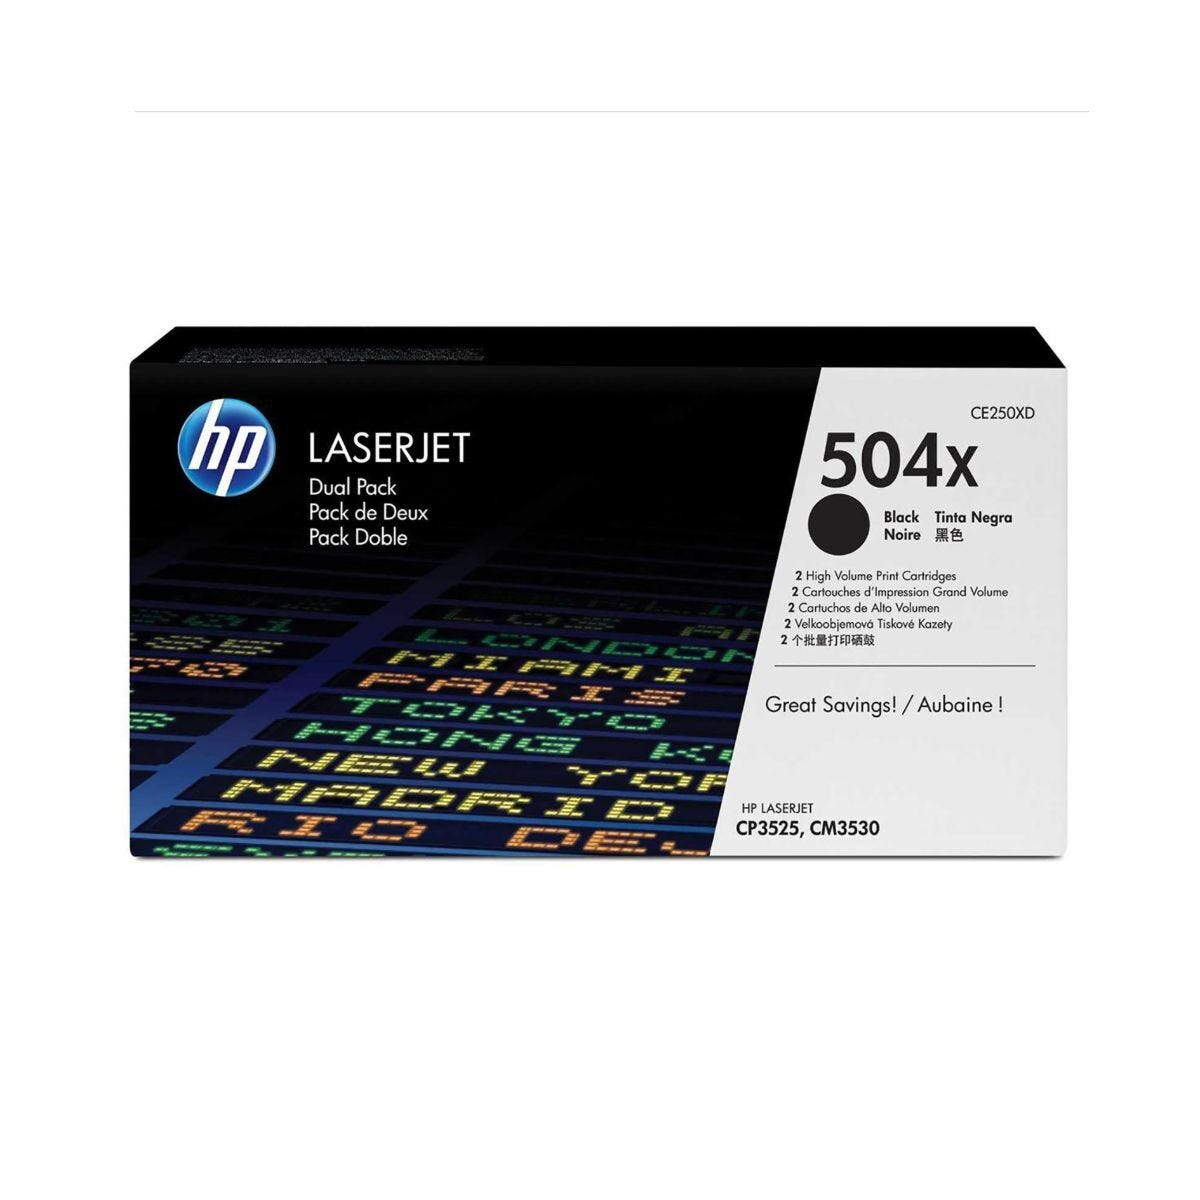 HP 504X Dual Pack Laser Toner Black